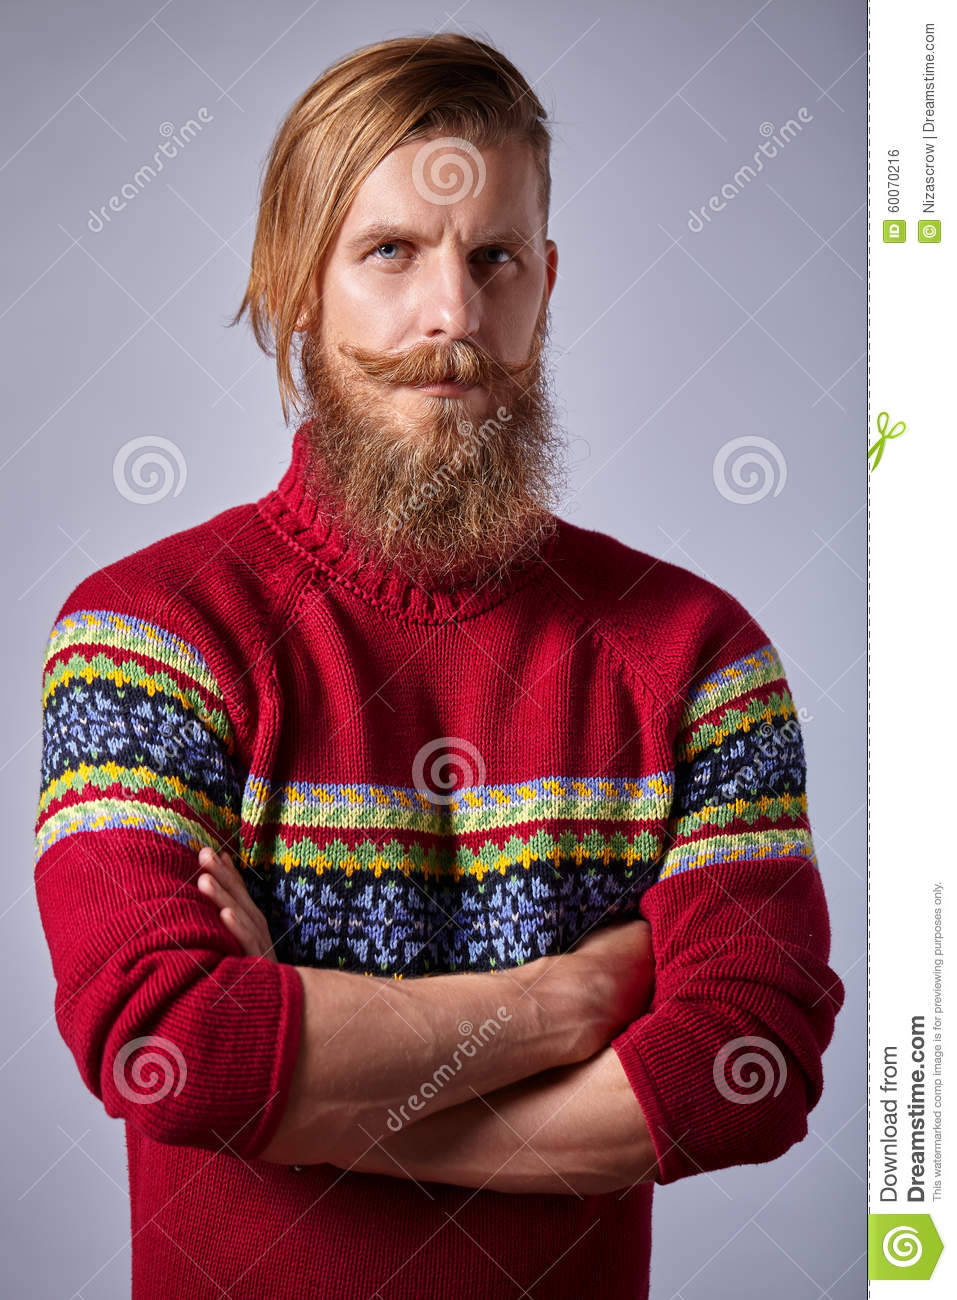 Bearded Man With Curled Mustache Knit Red Sweater Standing Stock ...